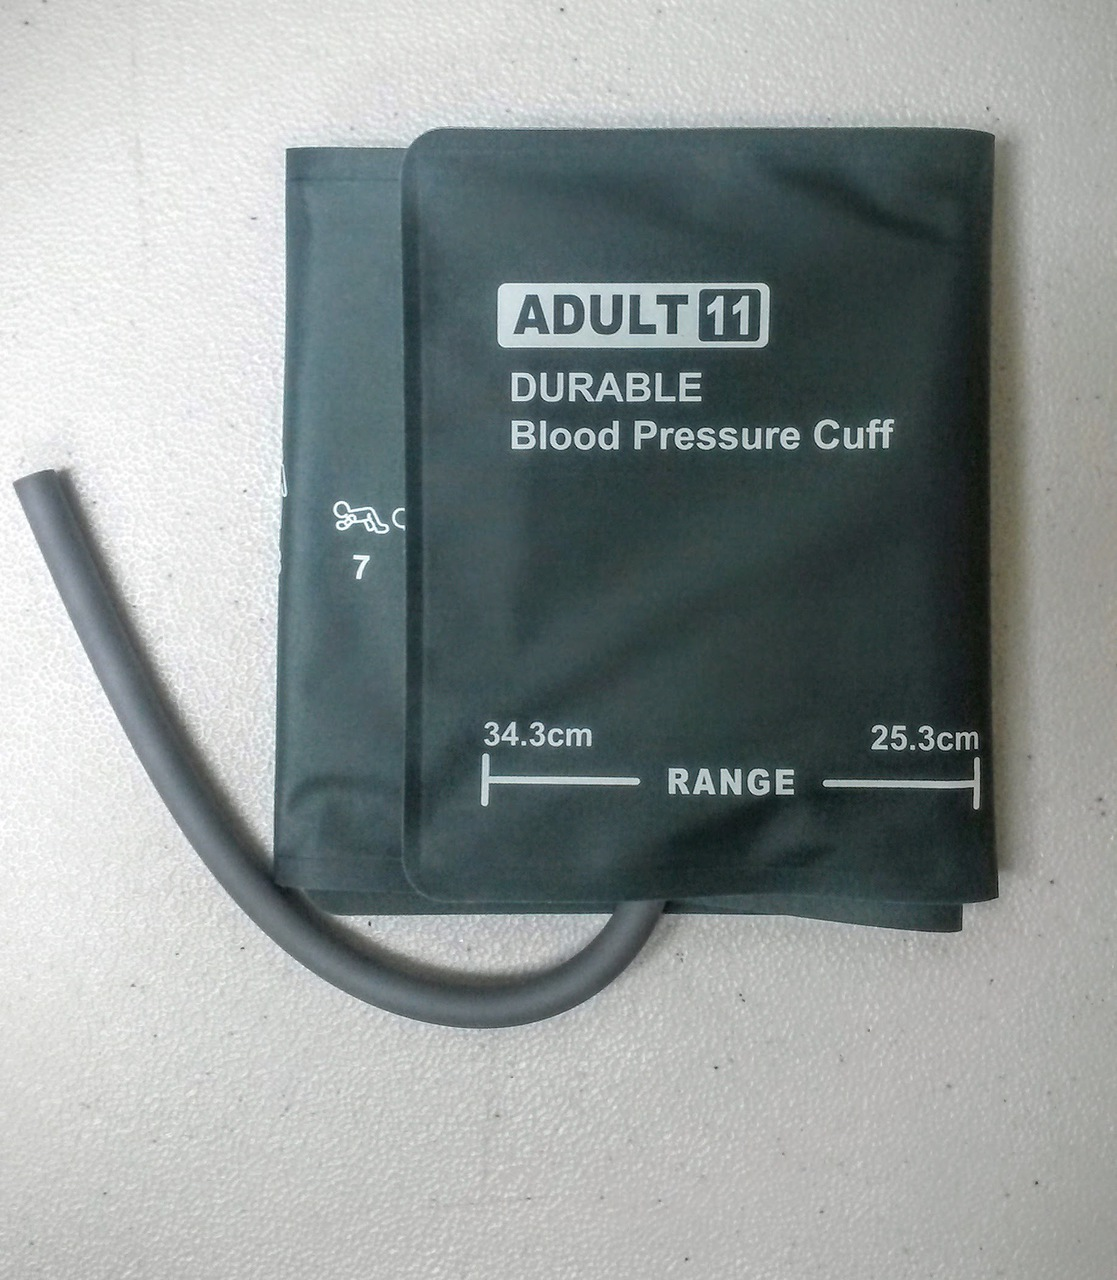 Accessories Cuff Bladder Size 25.3 x 34.3 cm